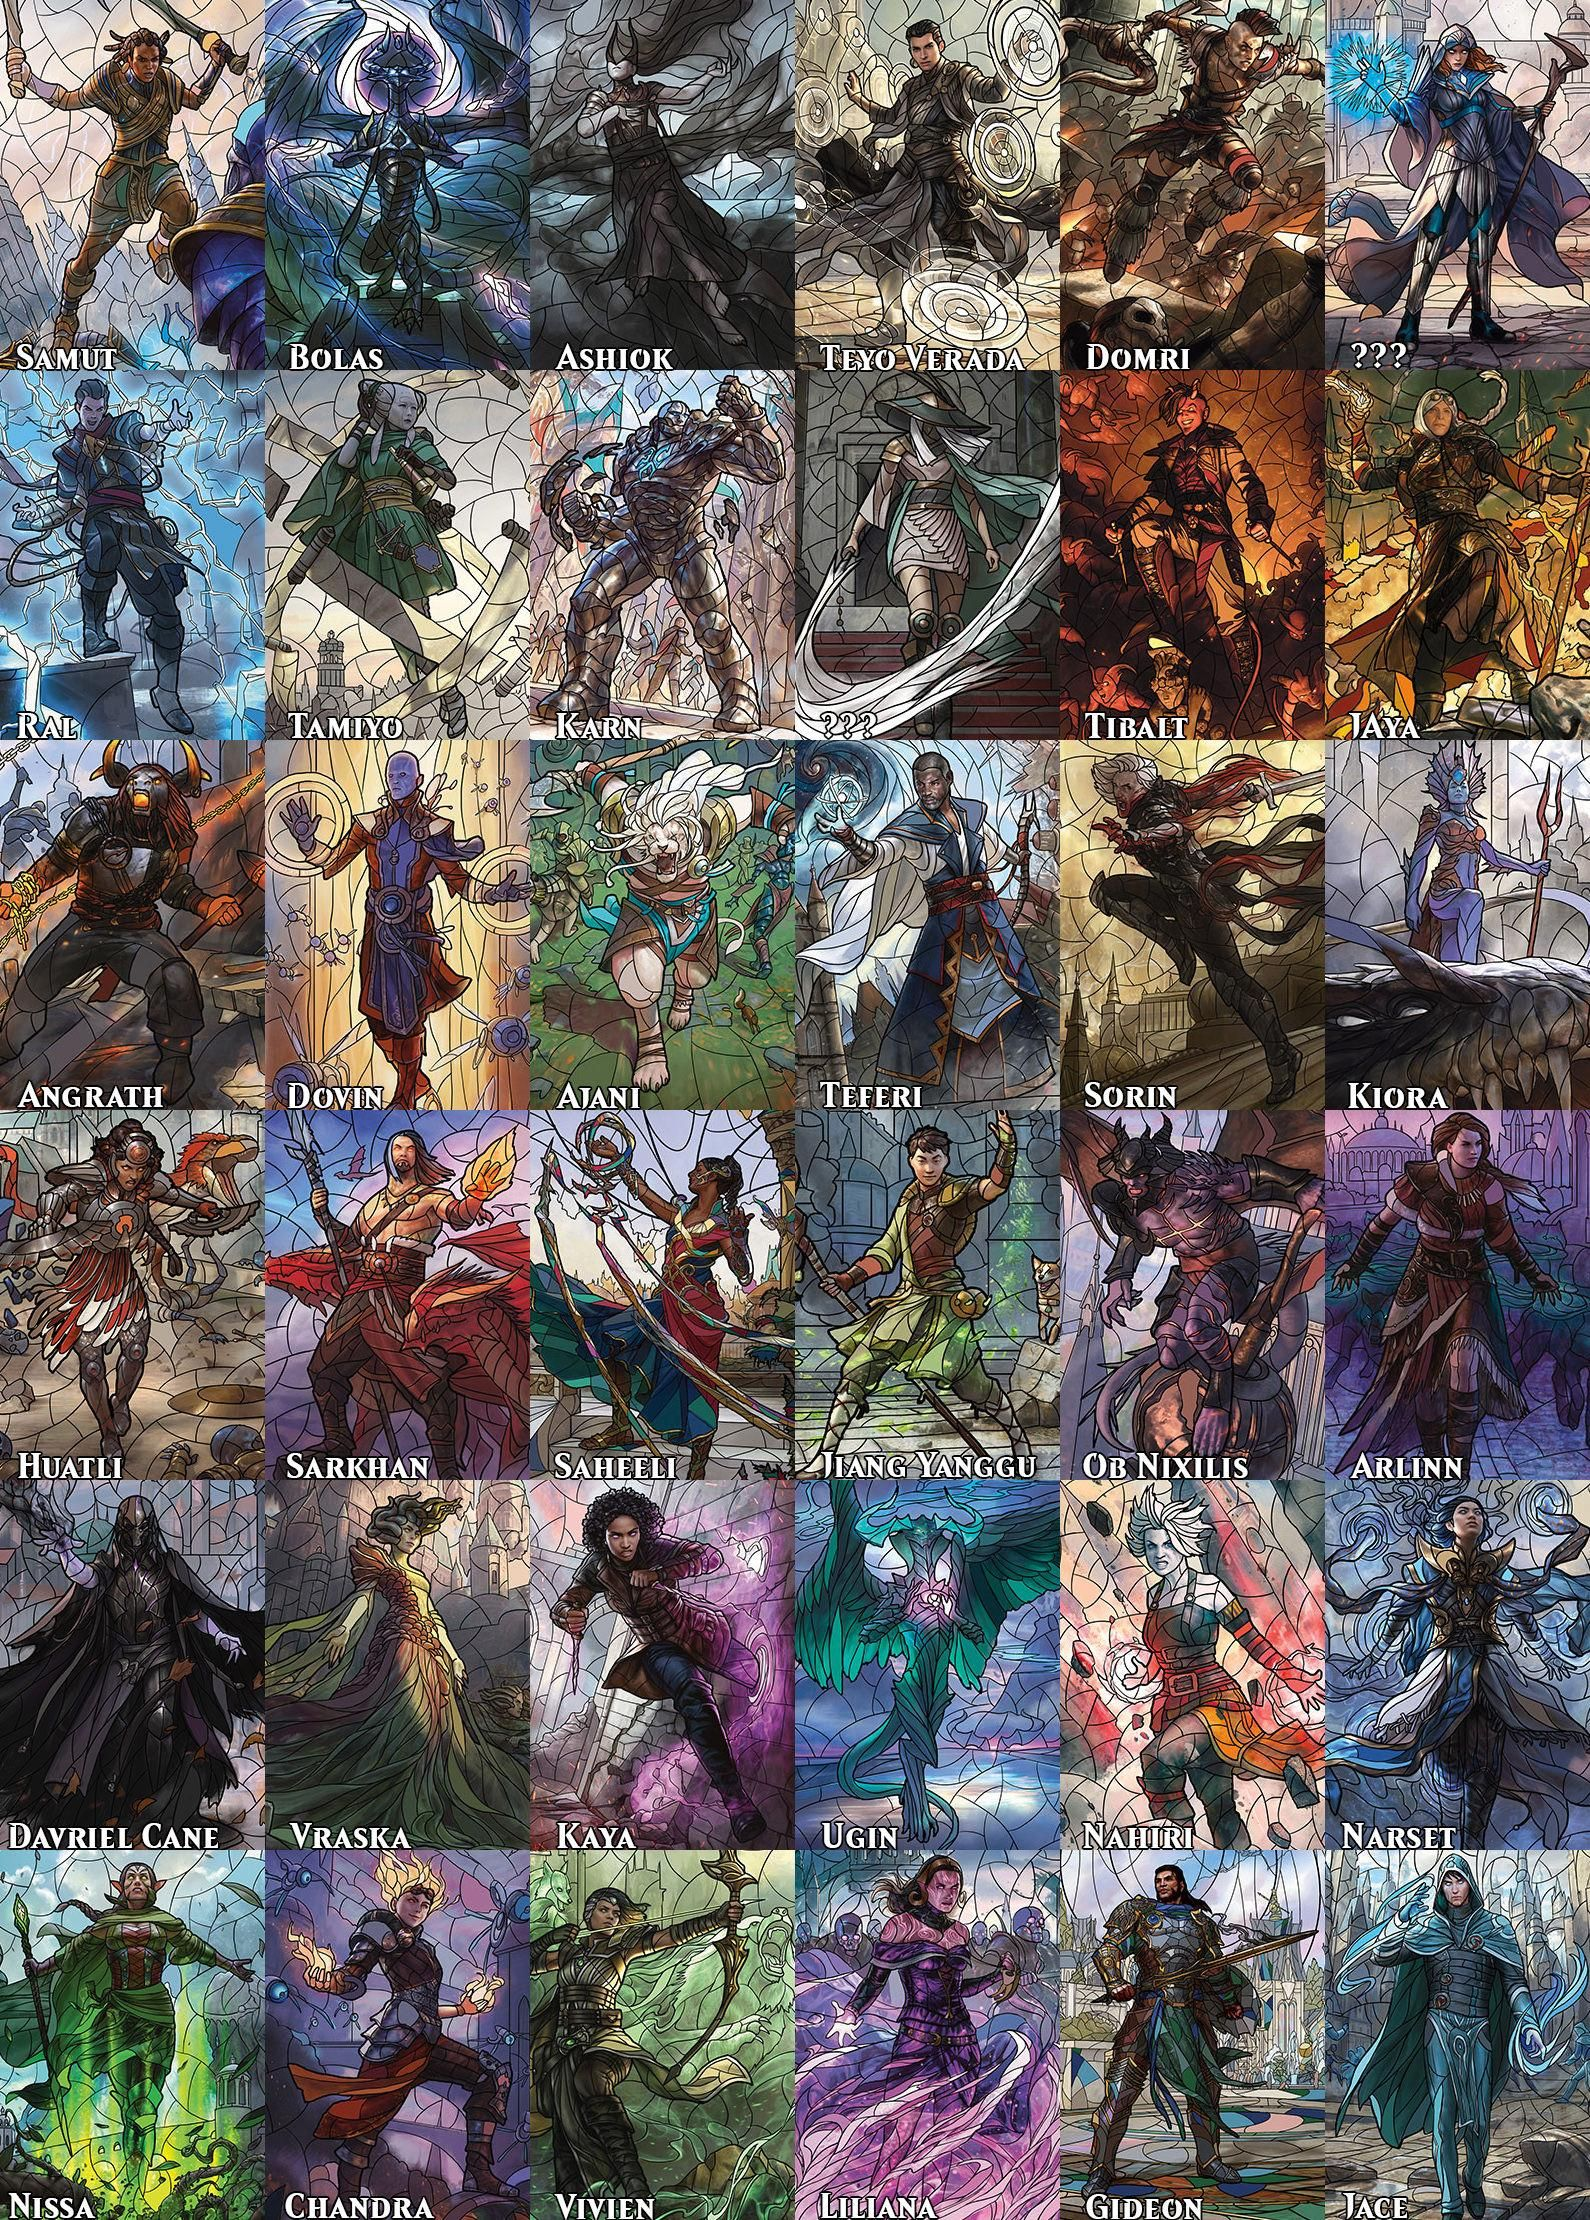 All 36 war planeswalkers in one image with names